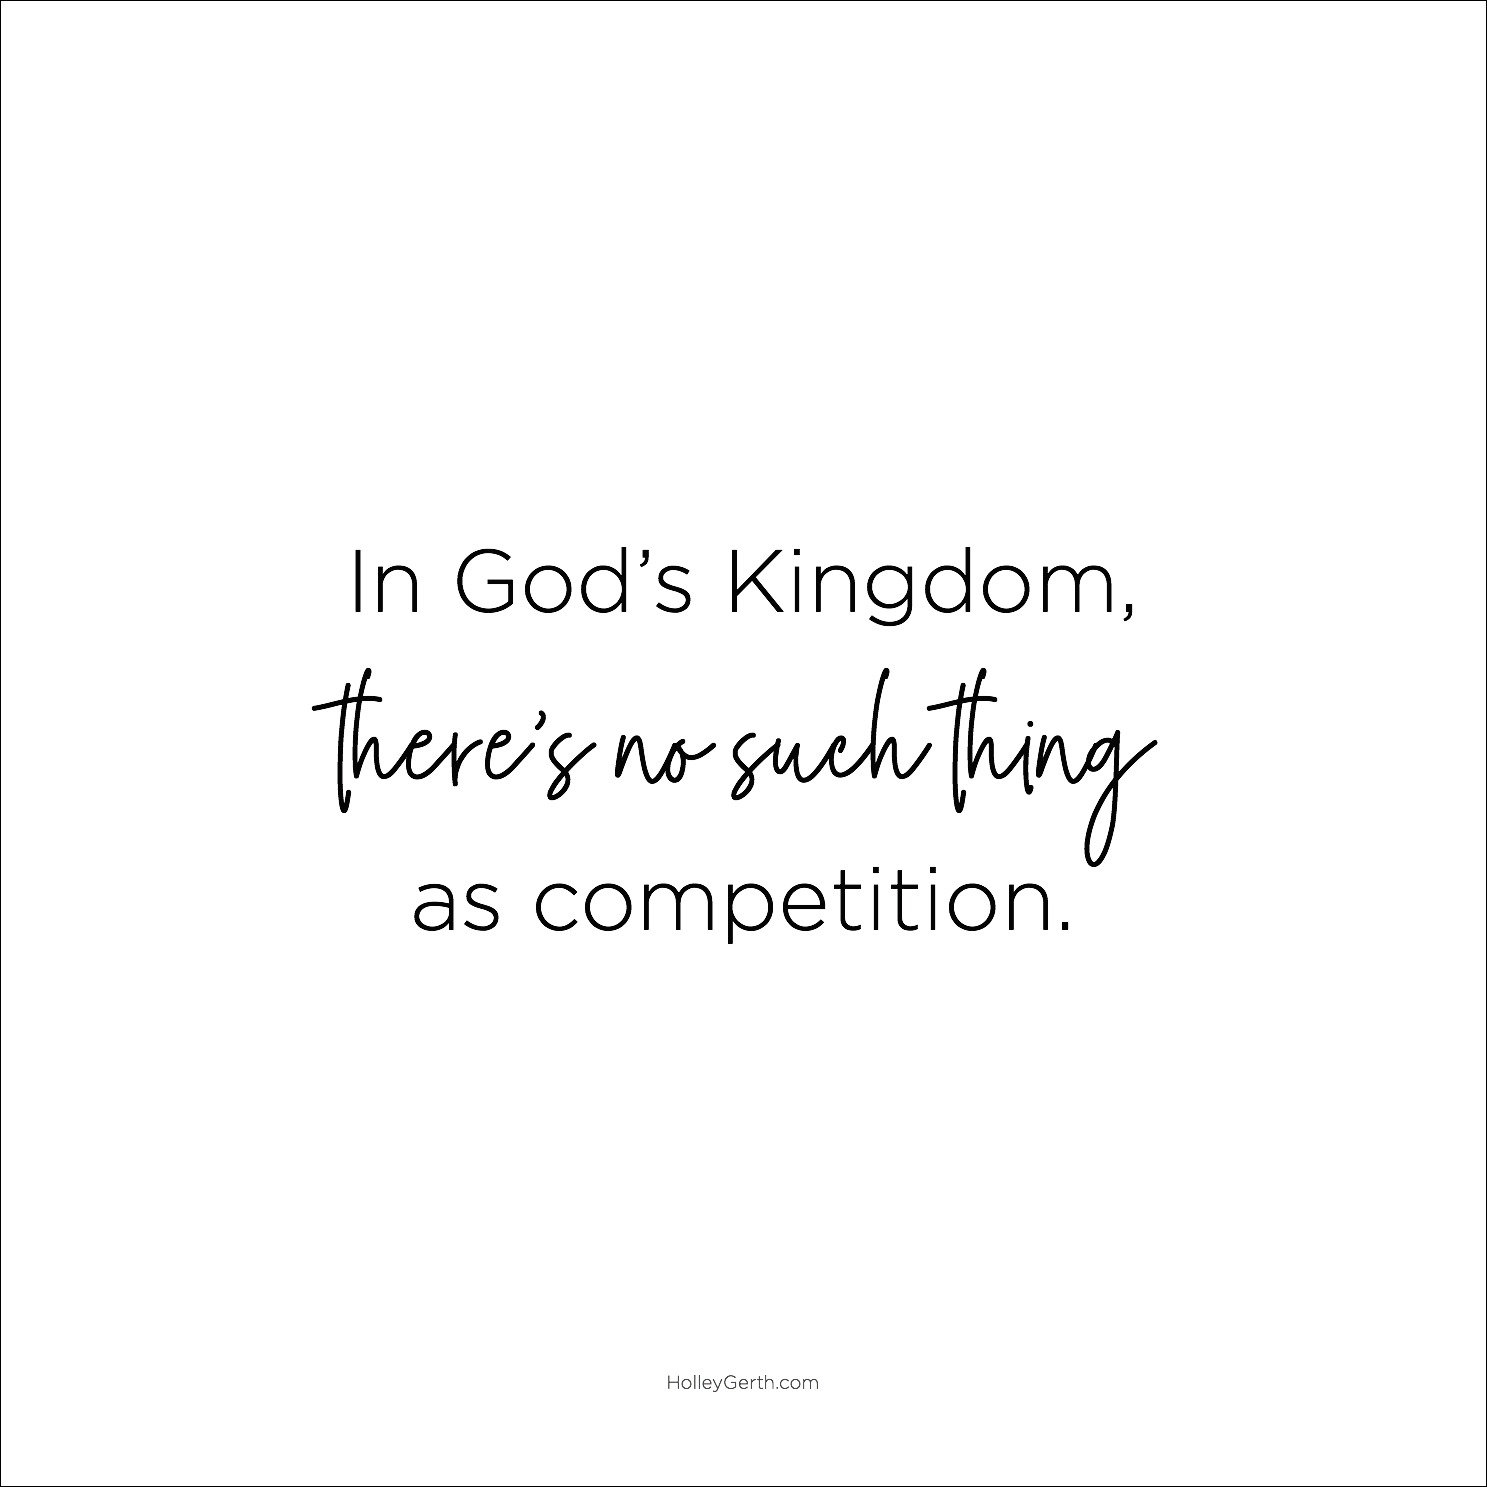 In God's Kingdom, there's no such thing as competition.